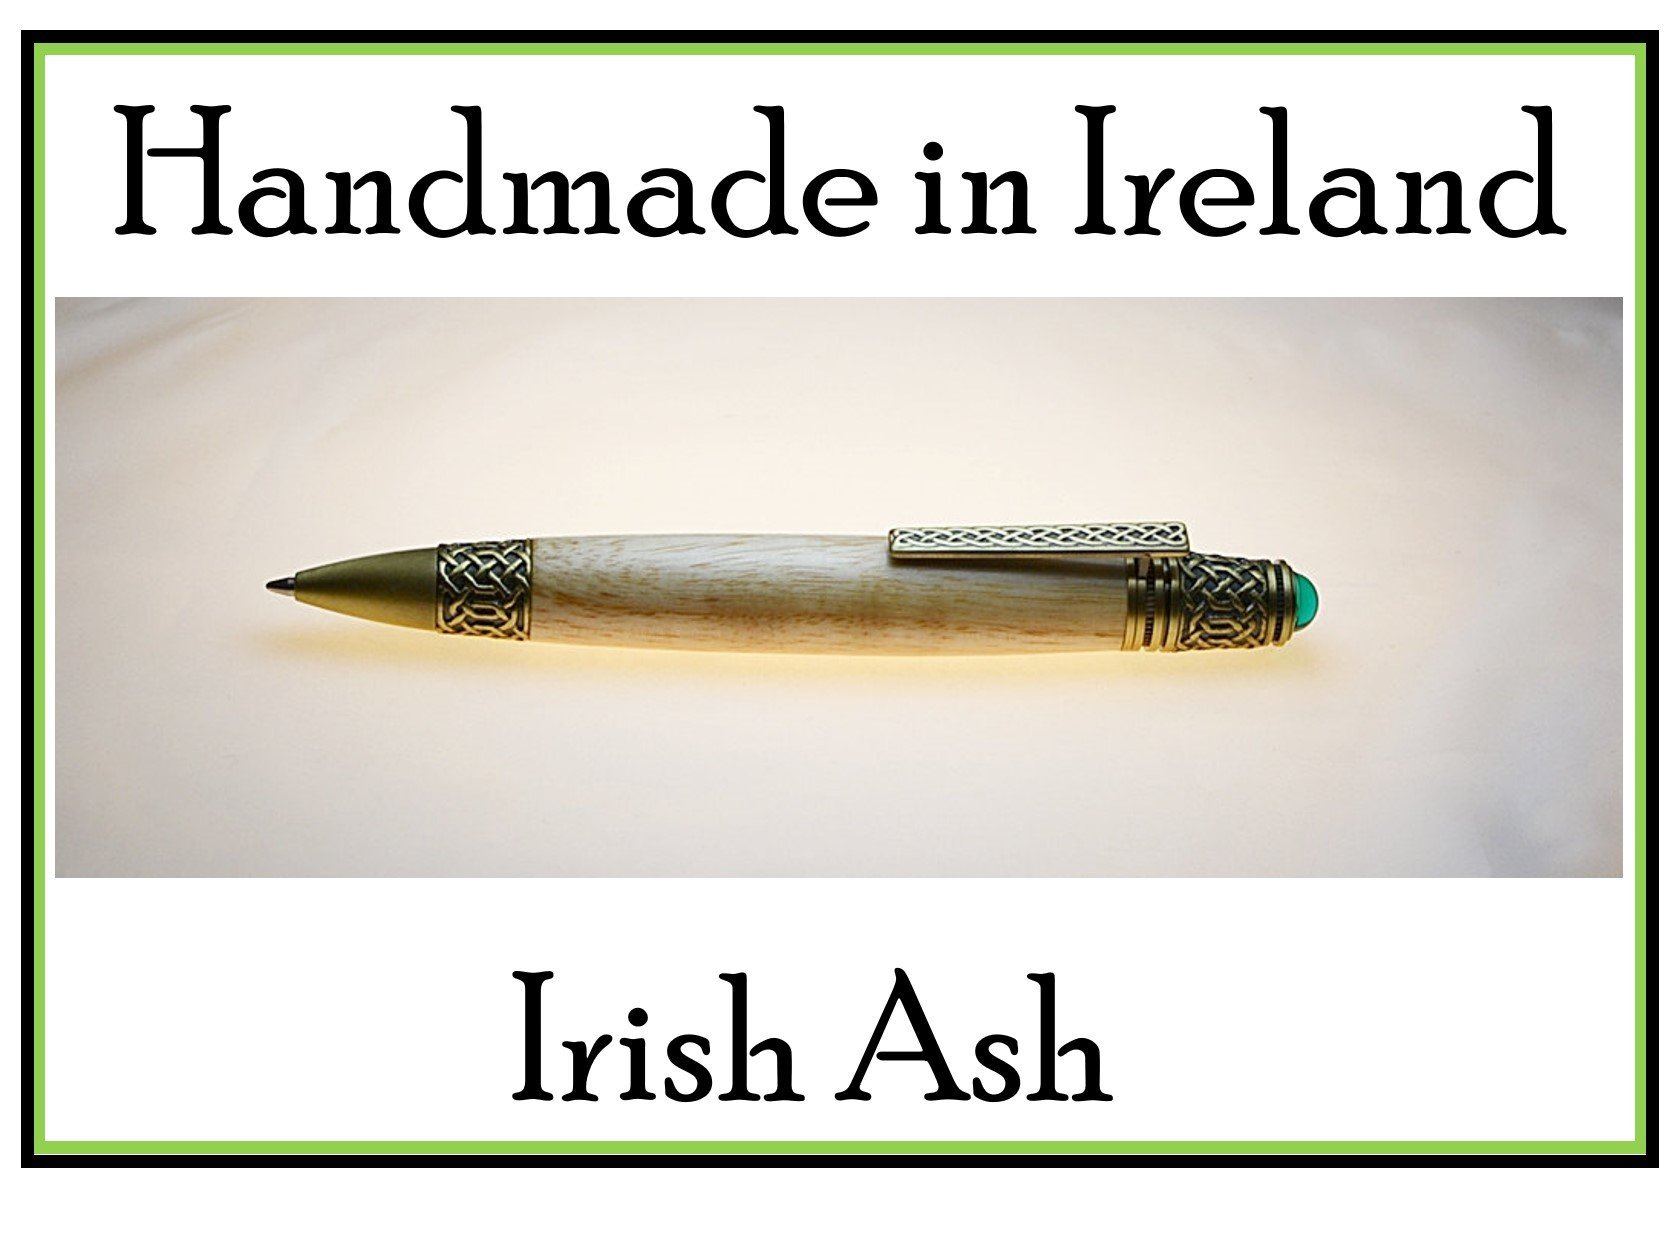 Irish handmade Celtic knot pen made with Irish Ash you can personalize the pen body best pen for smooth writing rollerball pen a gift writers would love Irish gifts made in Ireland